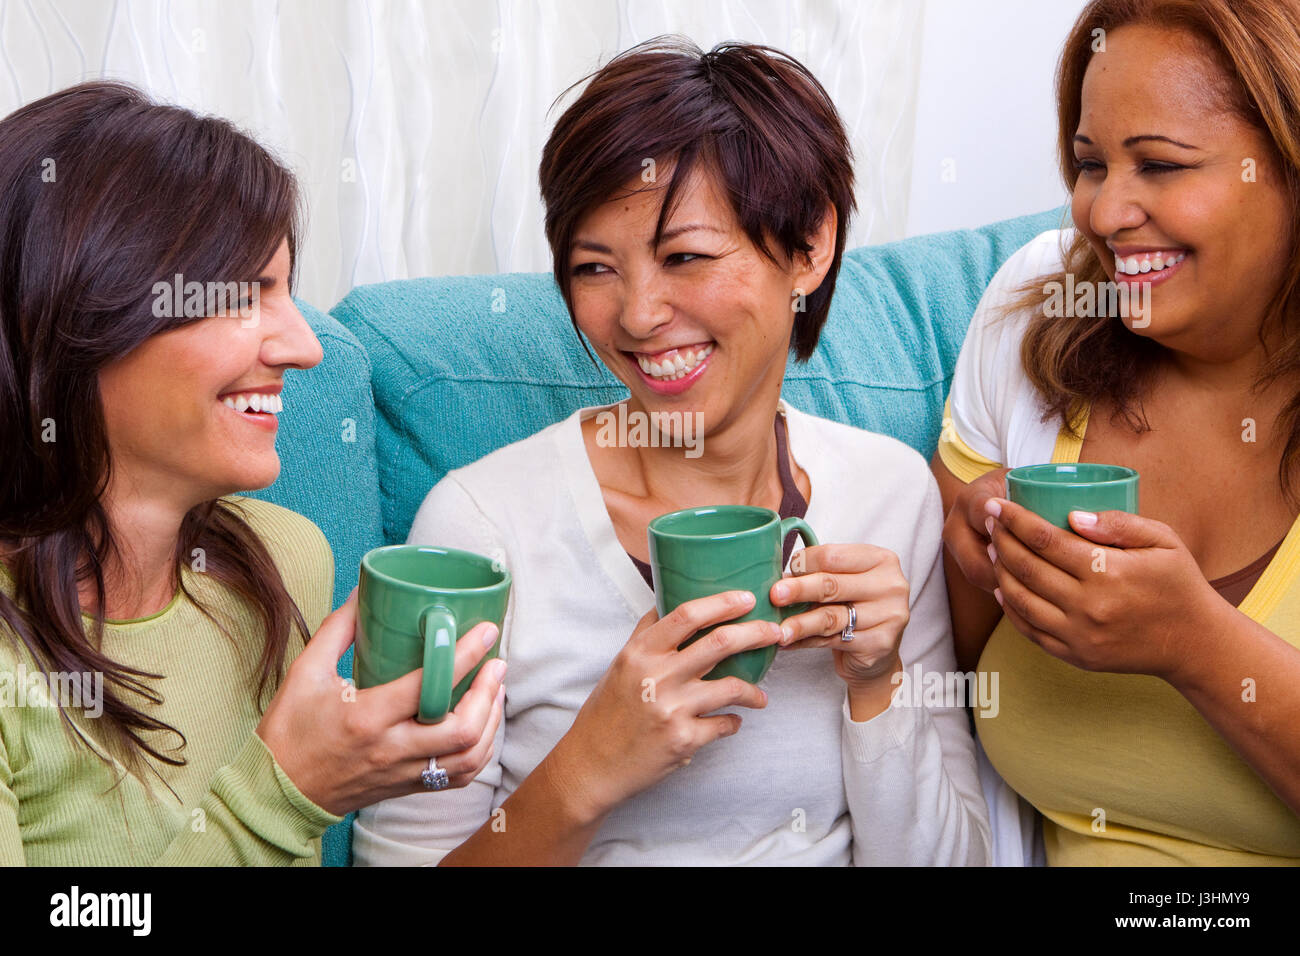 Diverse group of women talking and laughing. - Stock Image